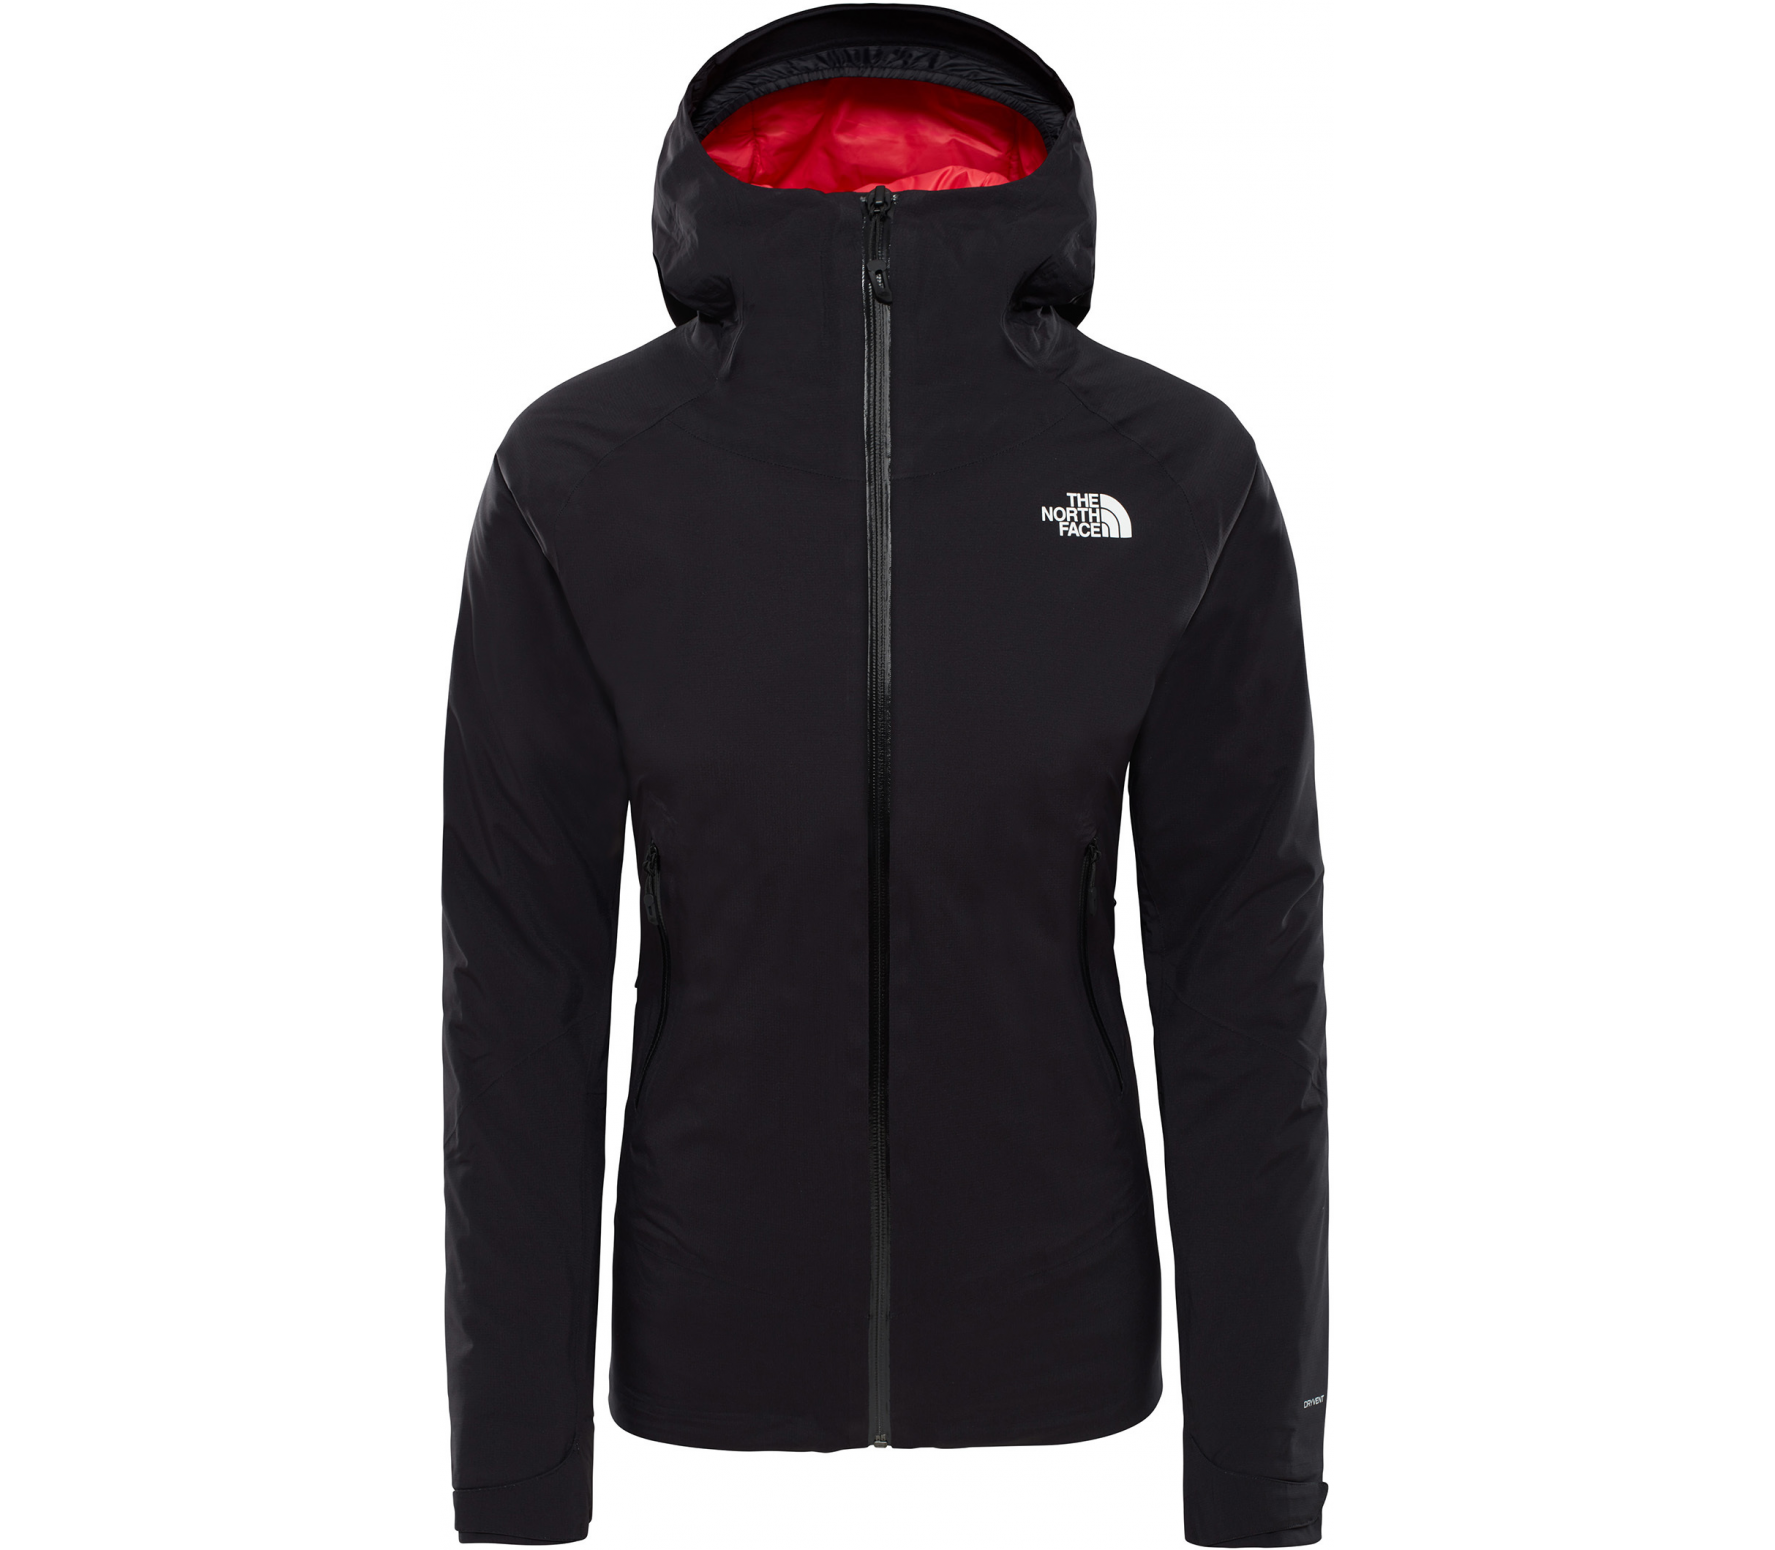 3924342ff The North Face - Impendor Insulated women's outdoor jacket (black)